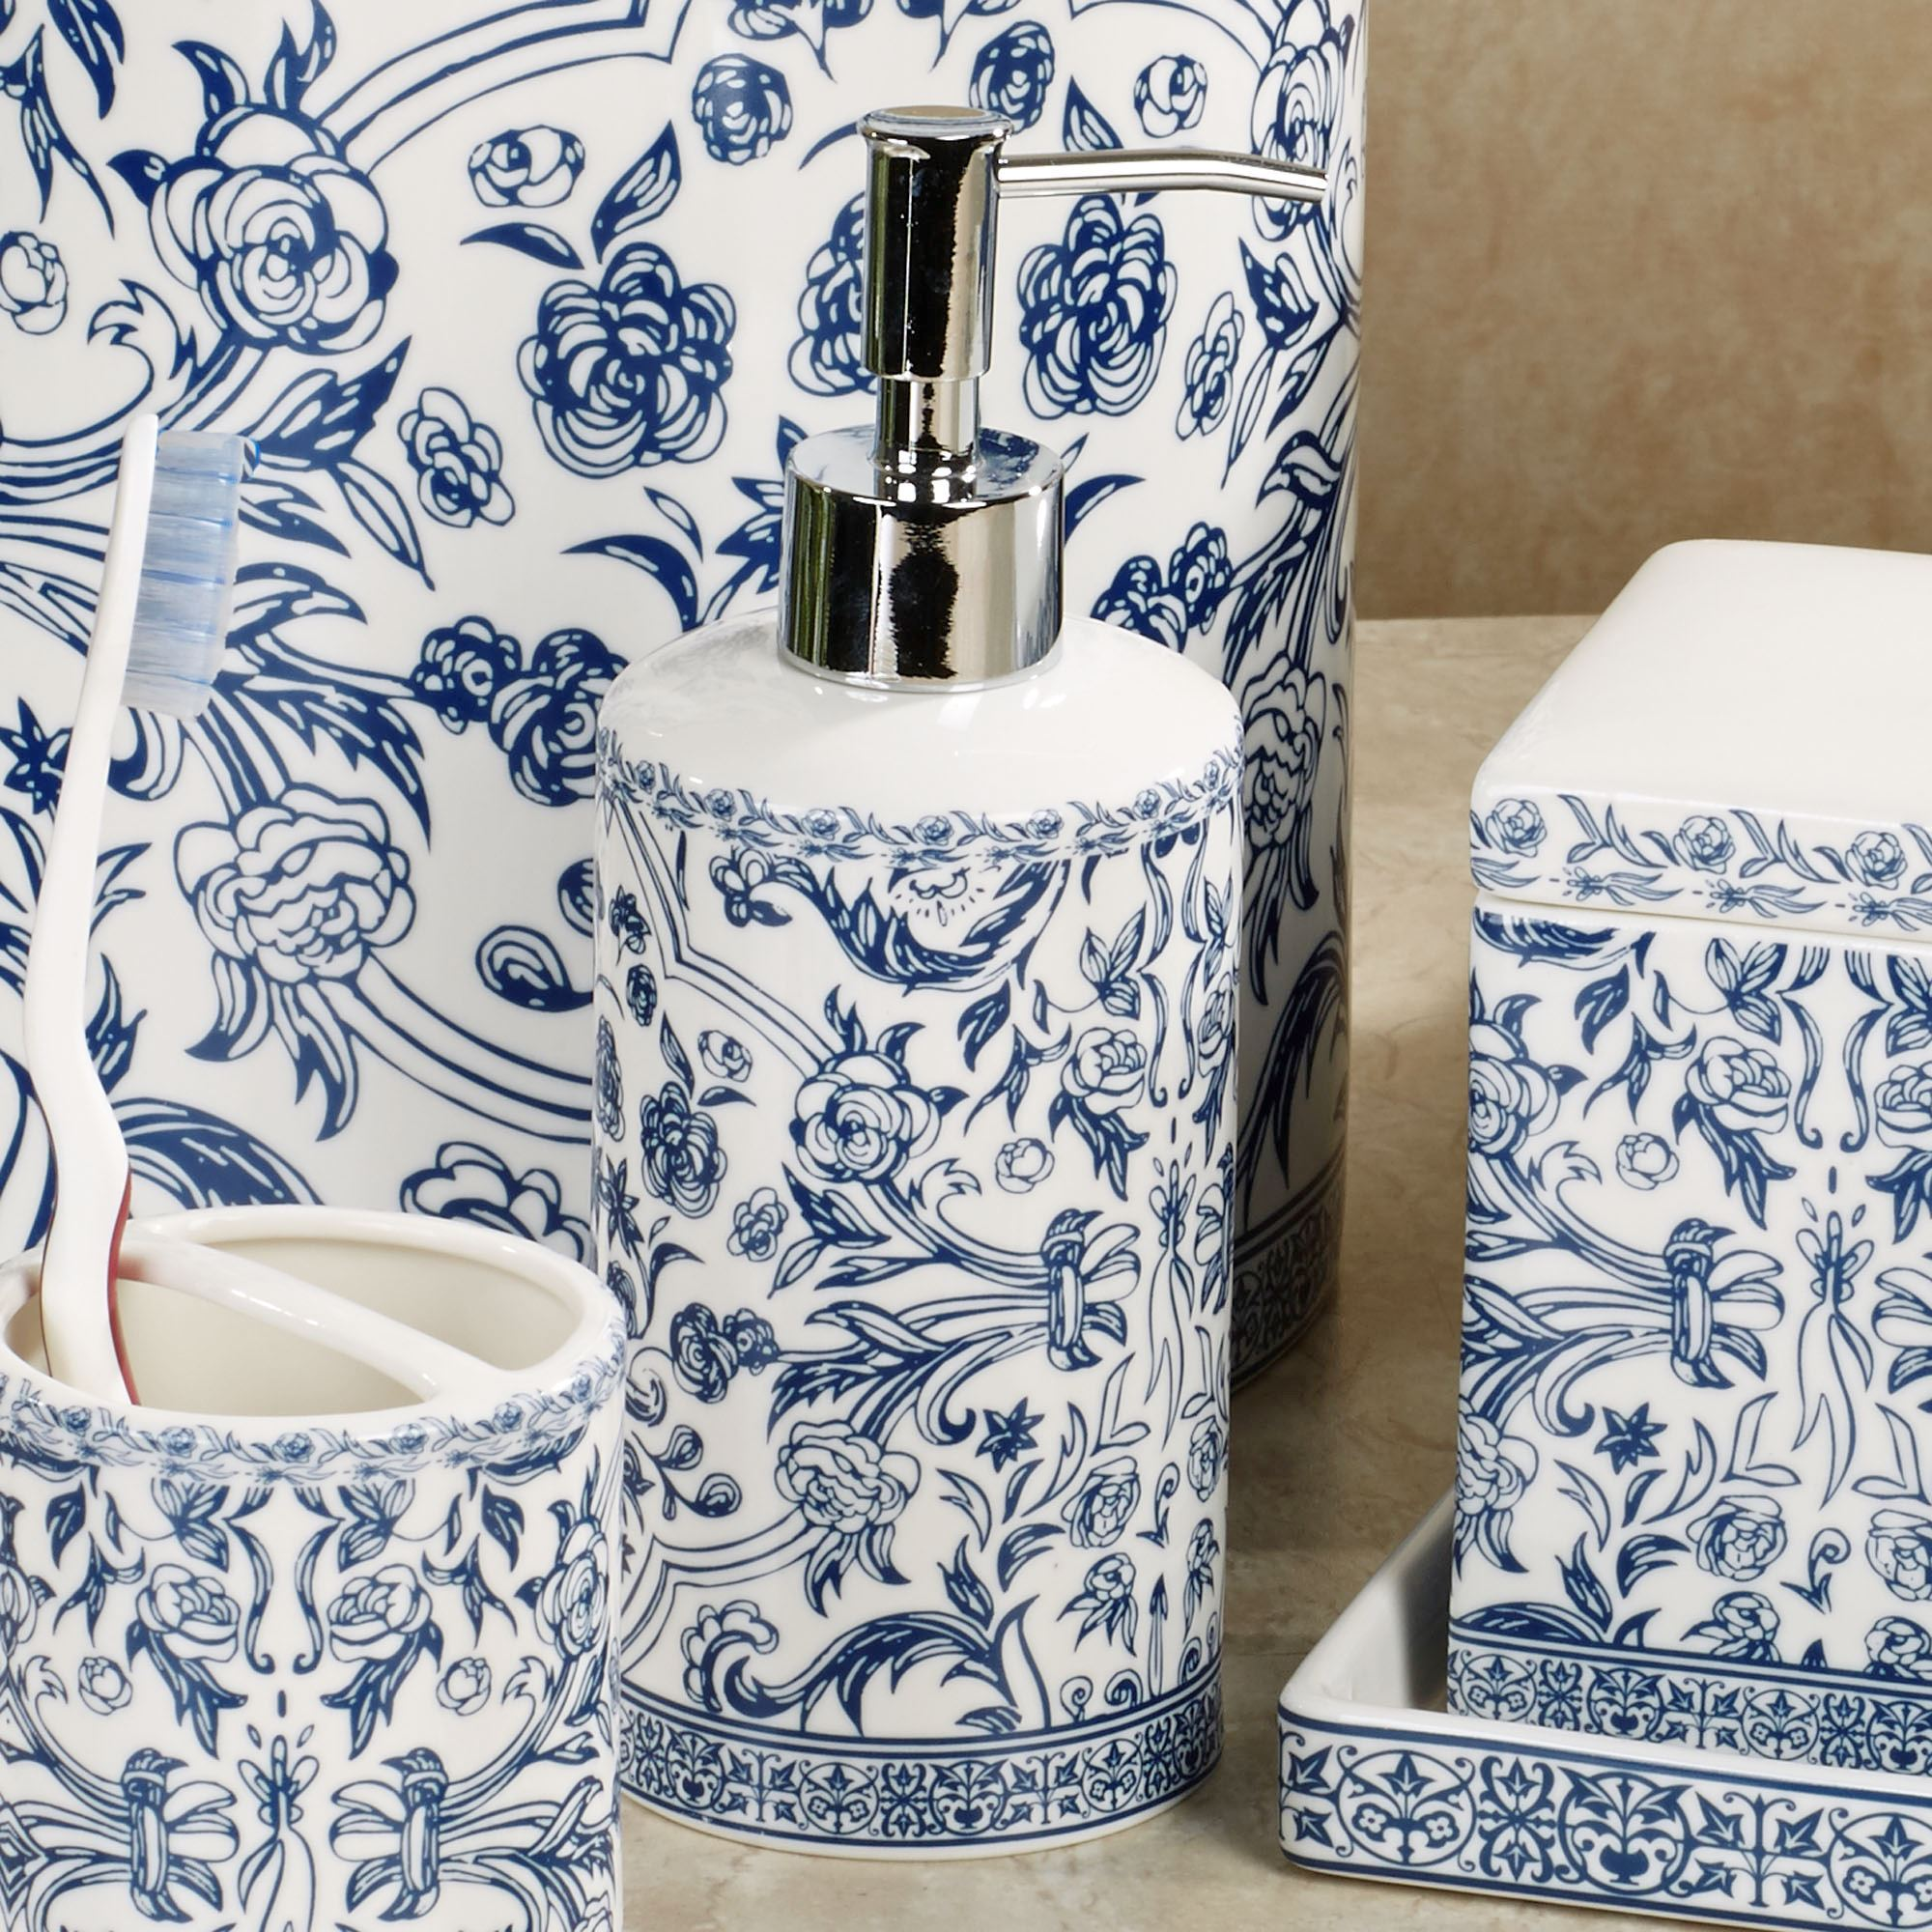 blue and white bathroom accessories orsay blue toile porcelain bath accessories 22794